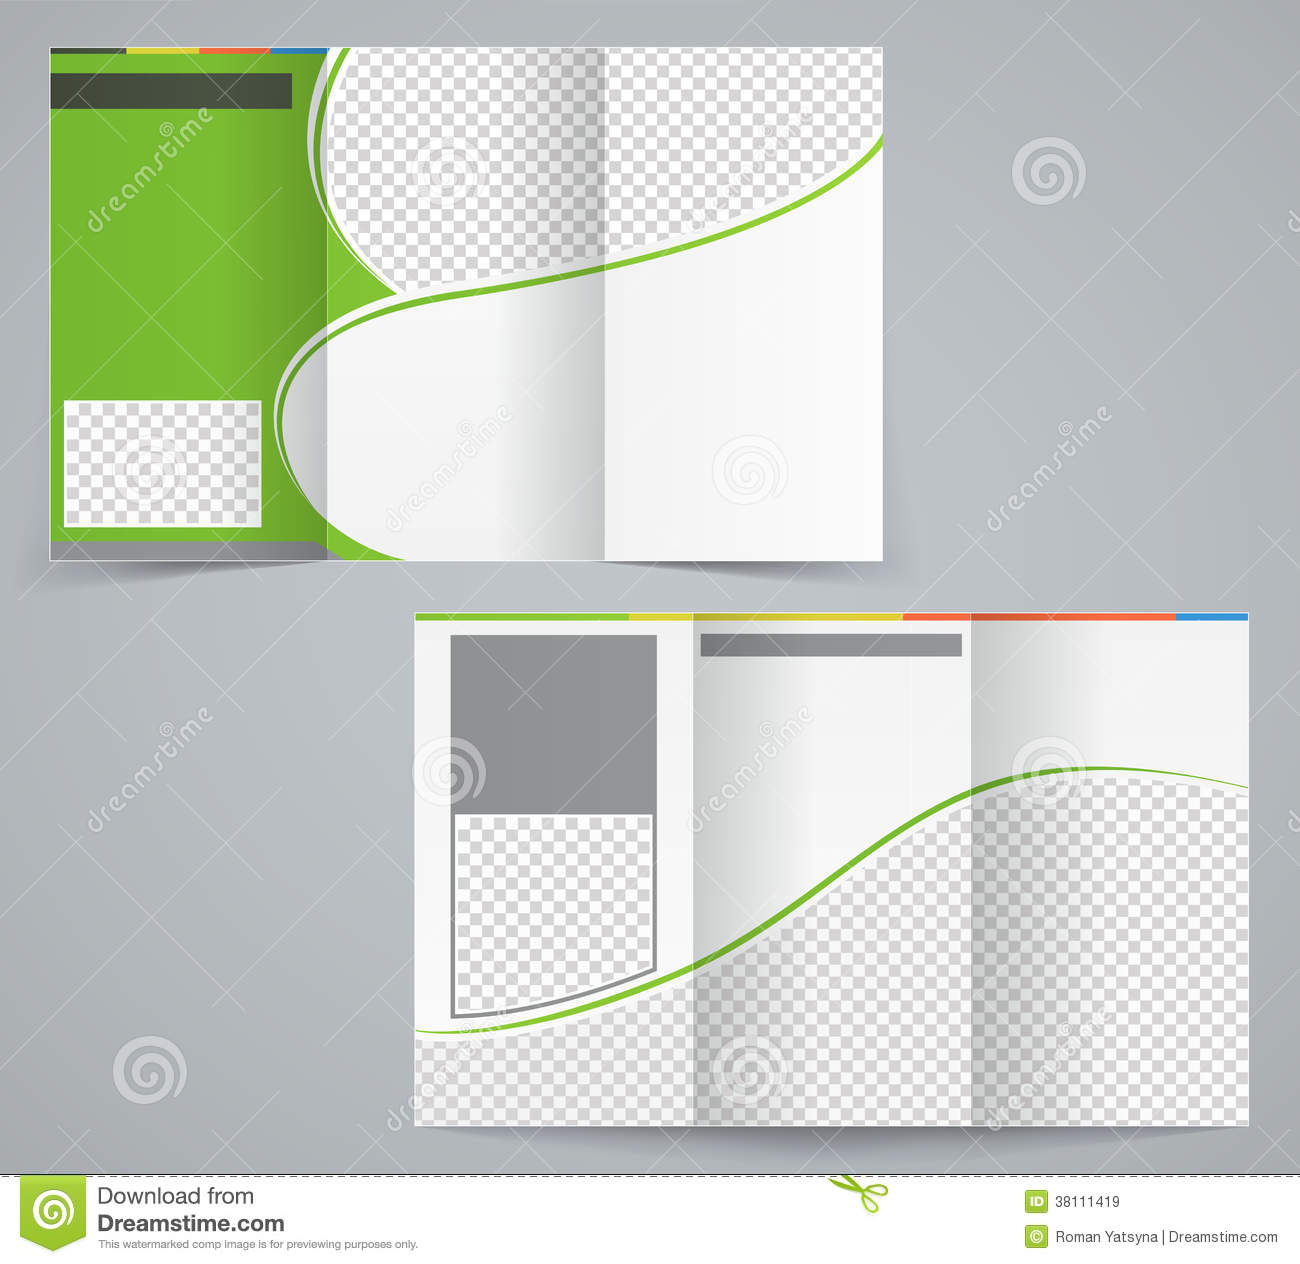 Tri-fold Business Brochure Template, Vector Green Stock Vector ...